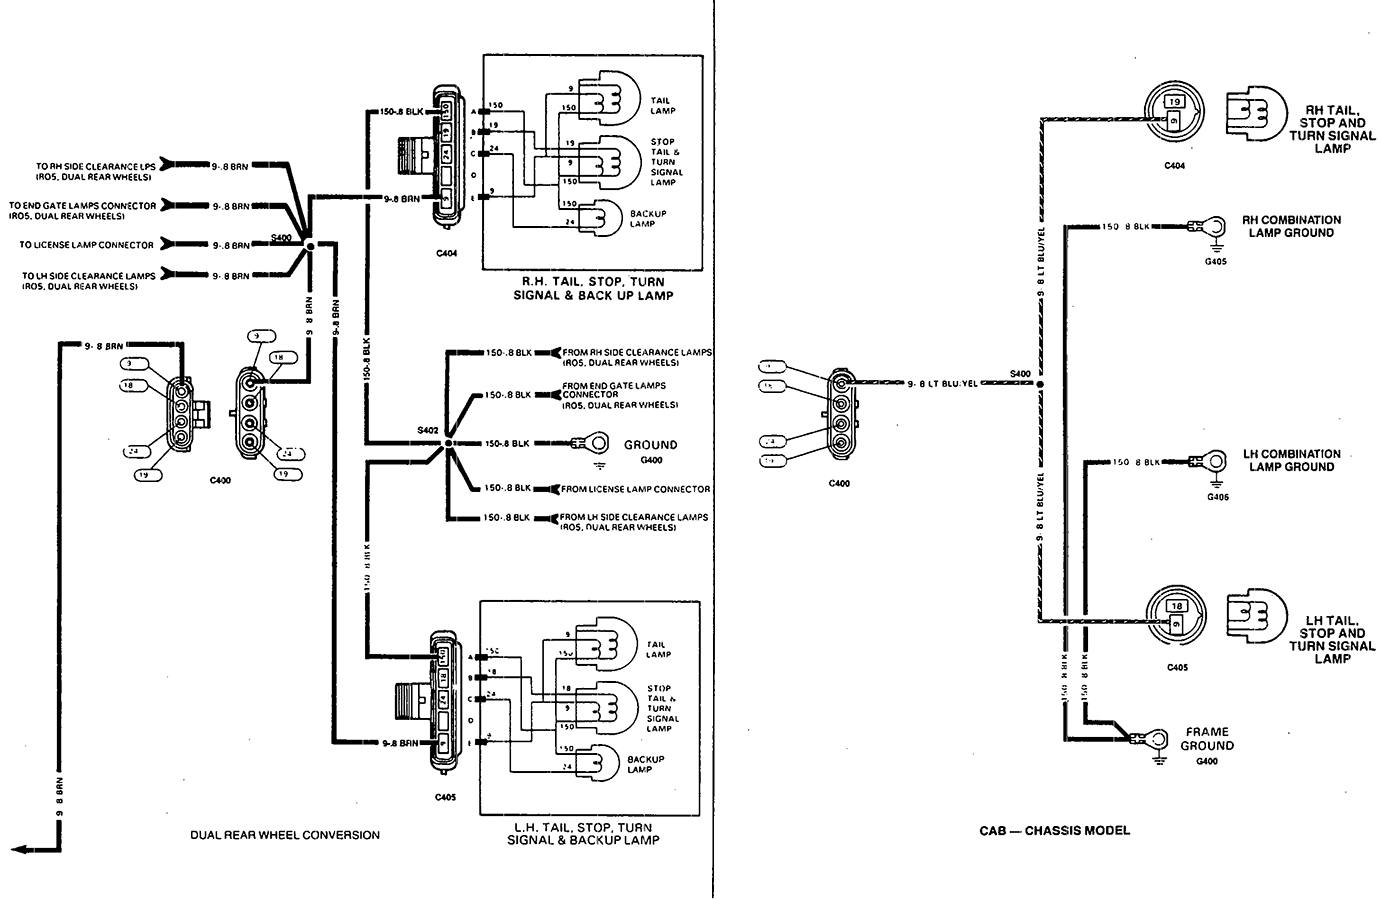 2004 Chevy Silverado Trailer Wiring Diagram